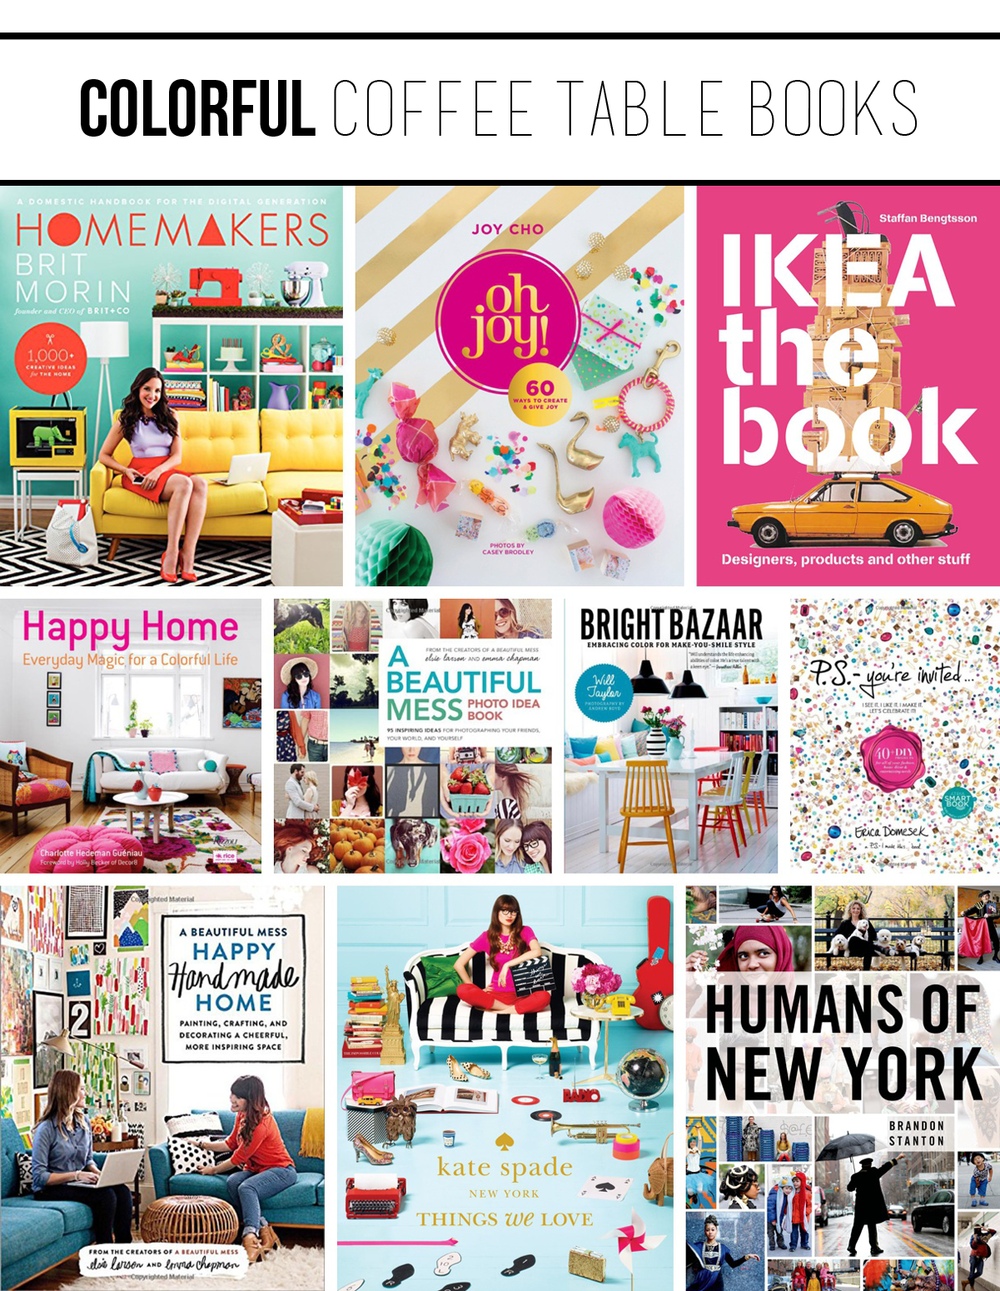 colorful-coffee-table-books-brit-oh-joy.png